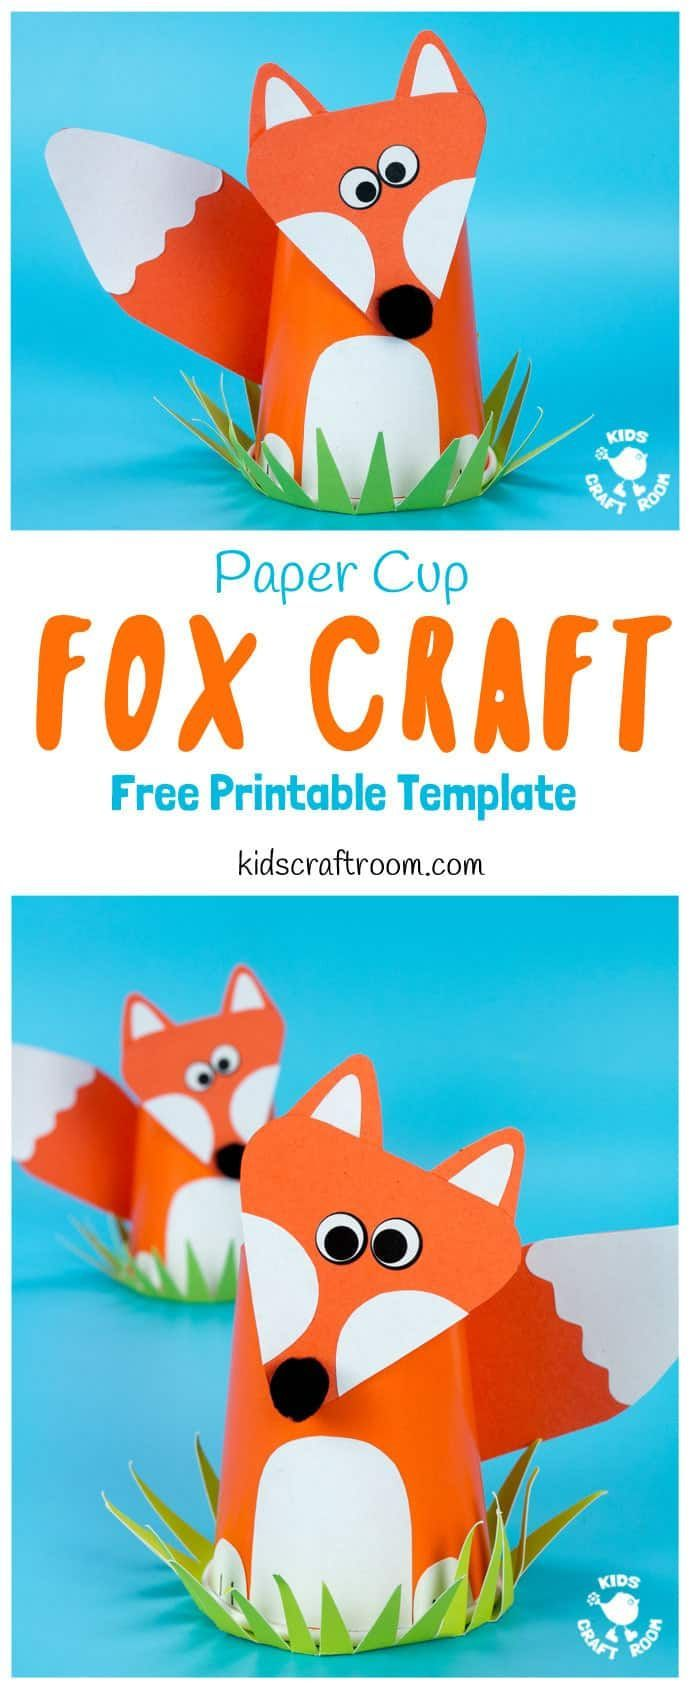 Cute Paper Cup Fox Craft For Kids CUTE PAPER CUP FOX CRAFT FOR KIDS. Fox crafts are so fun and this paper cup craft is easy to make with the free printable fox craft template. Such a fun woodland animal craft. via @KidsCraftRoom